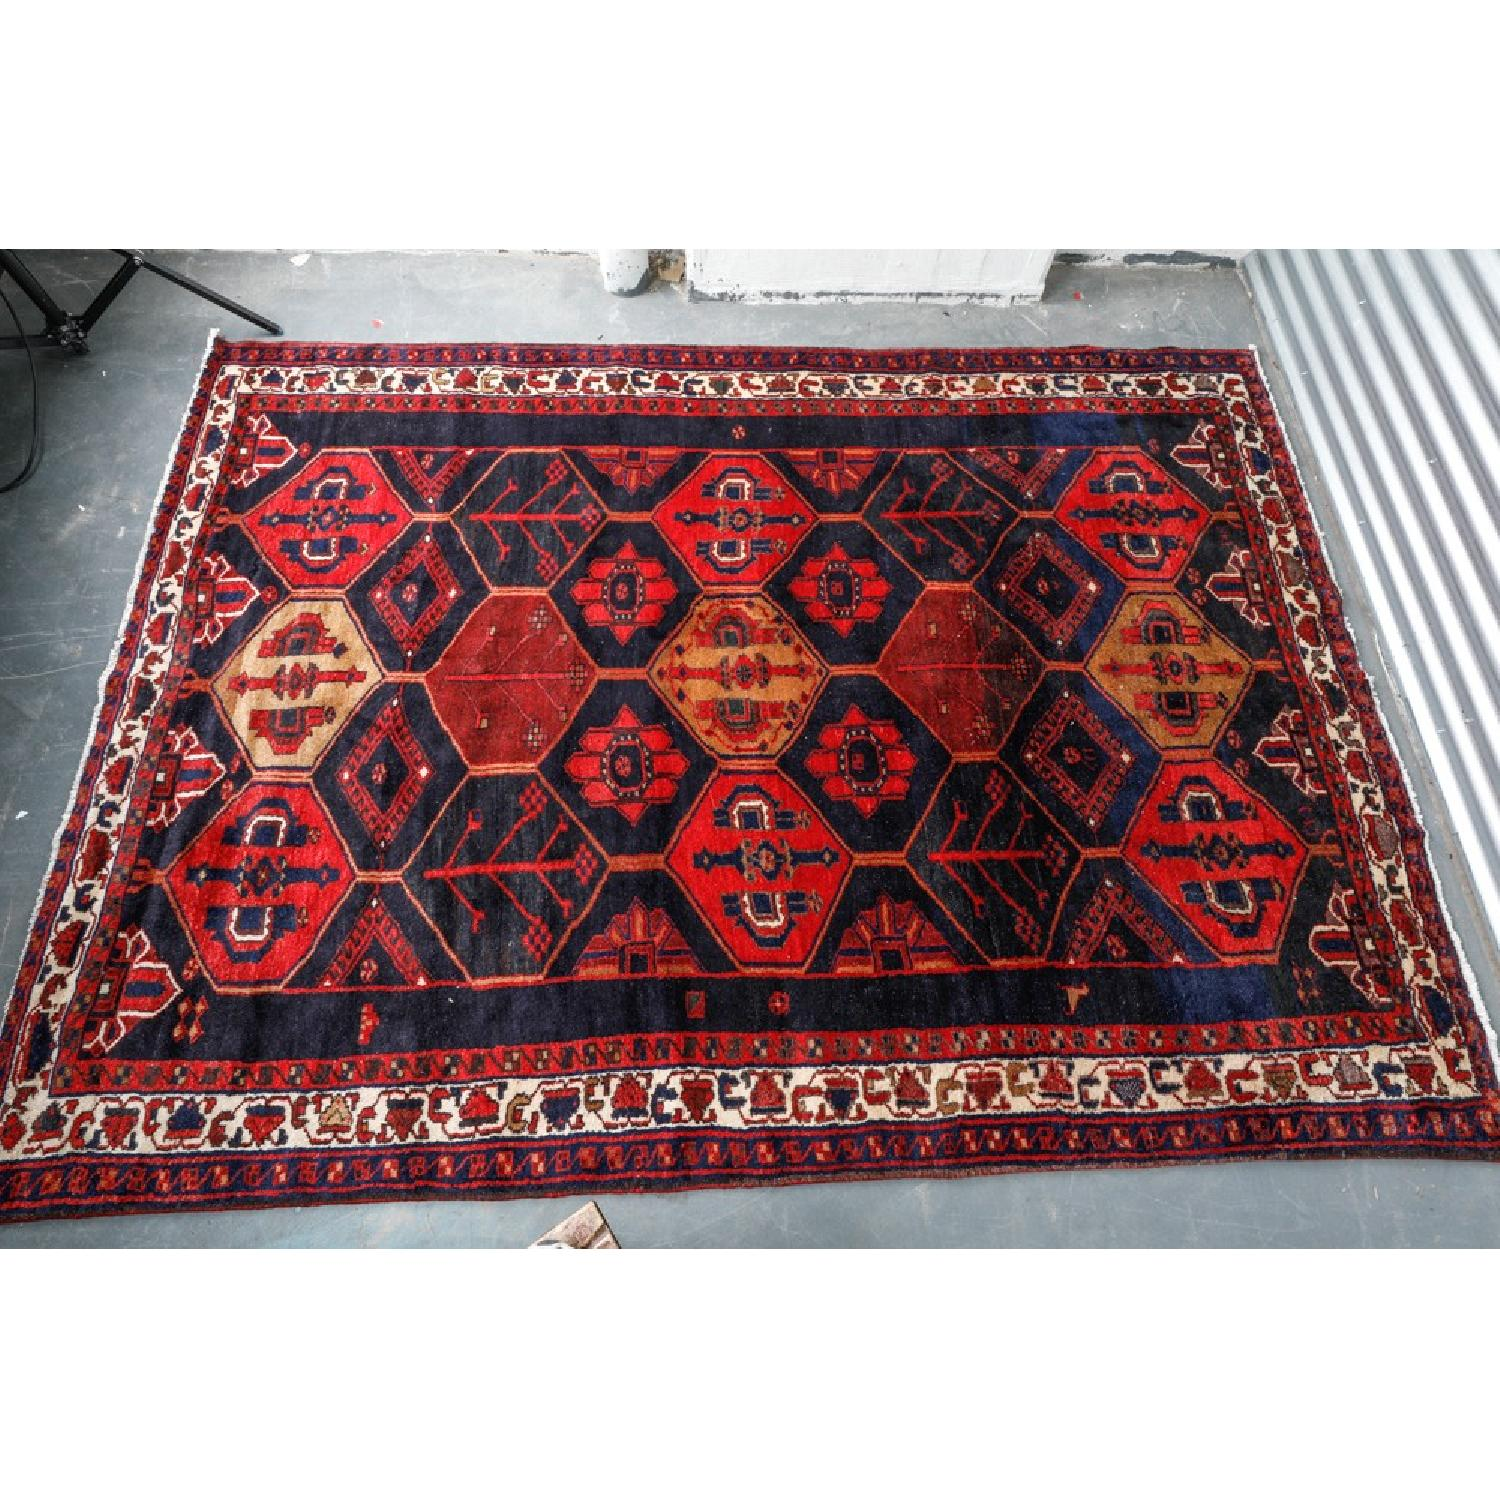 ABC Carpet and Home Patterned Area Rug - image-2